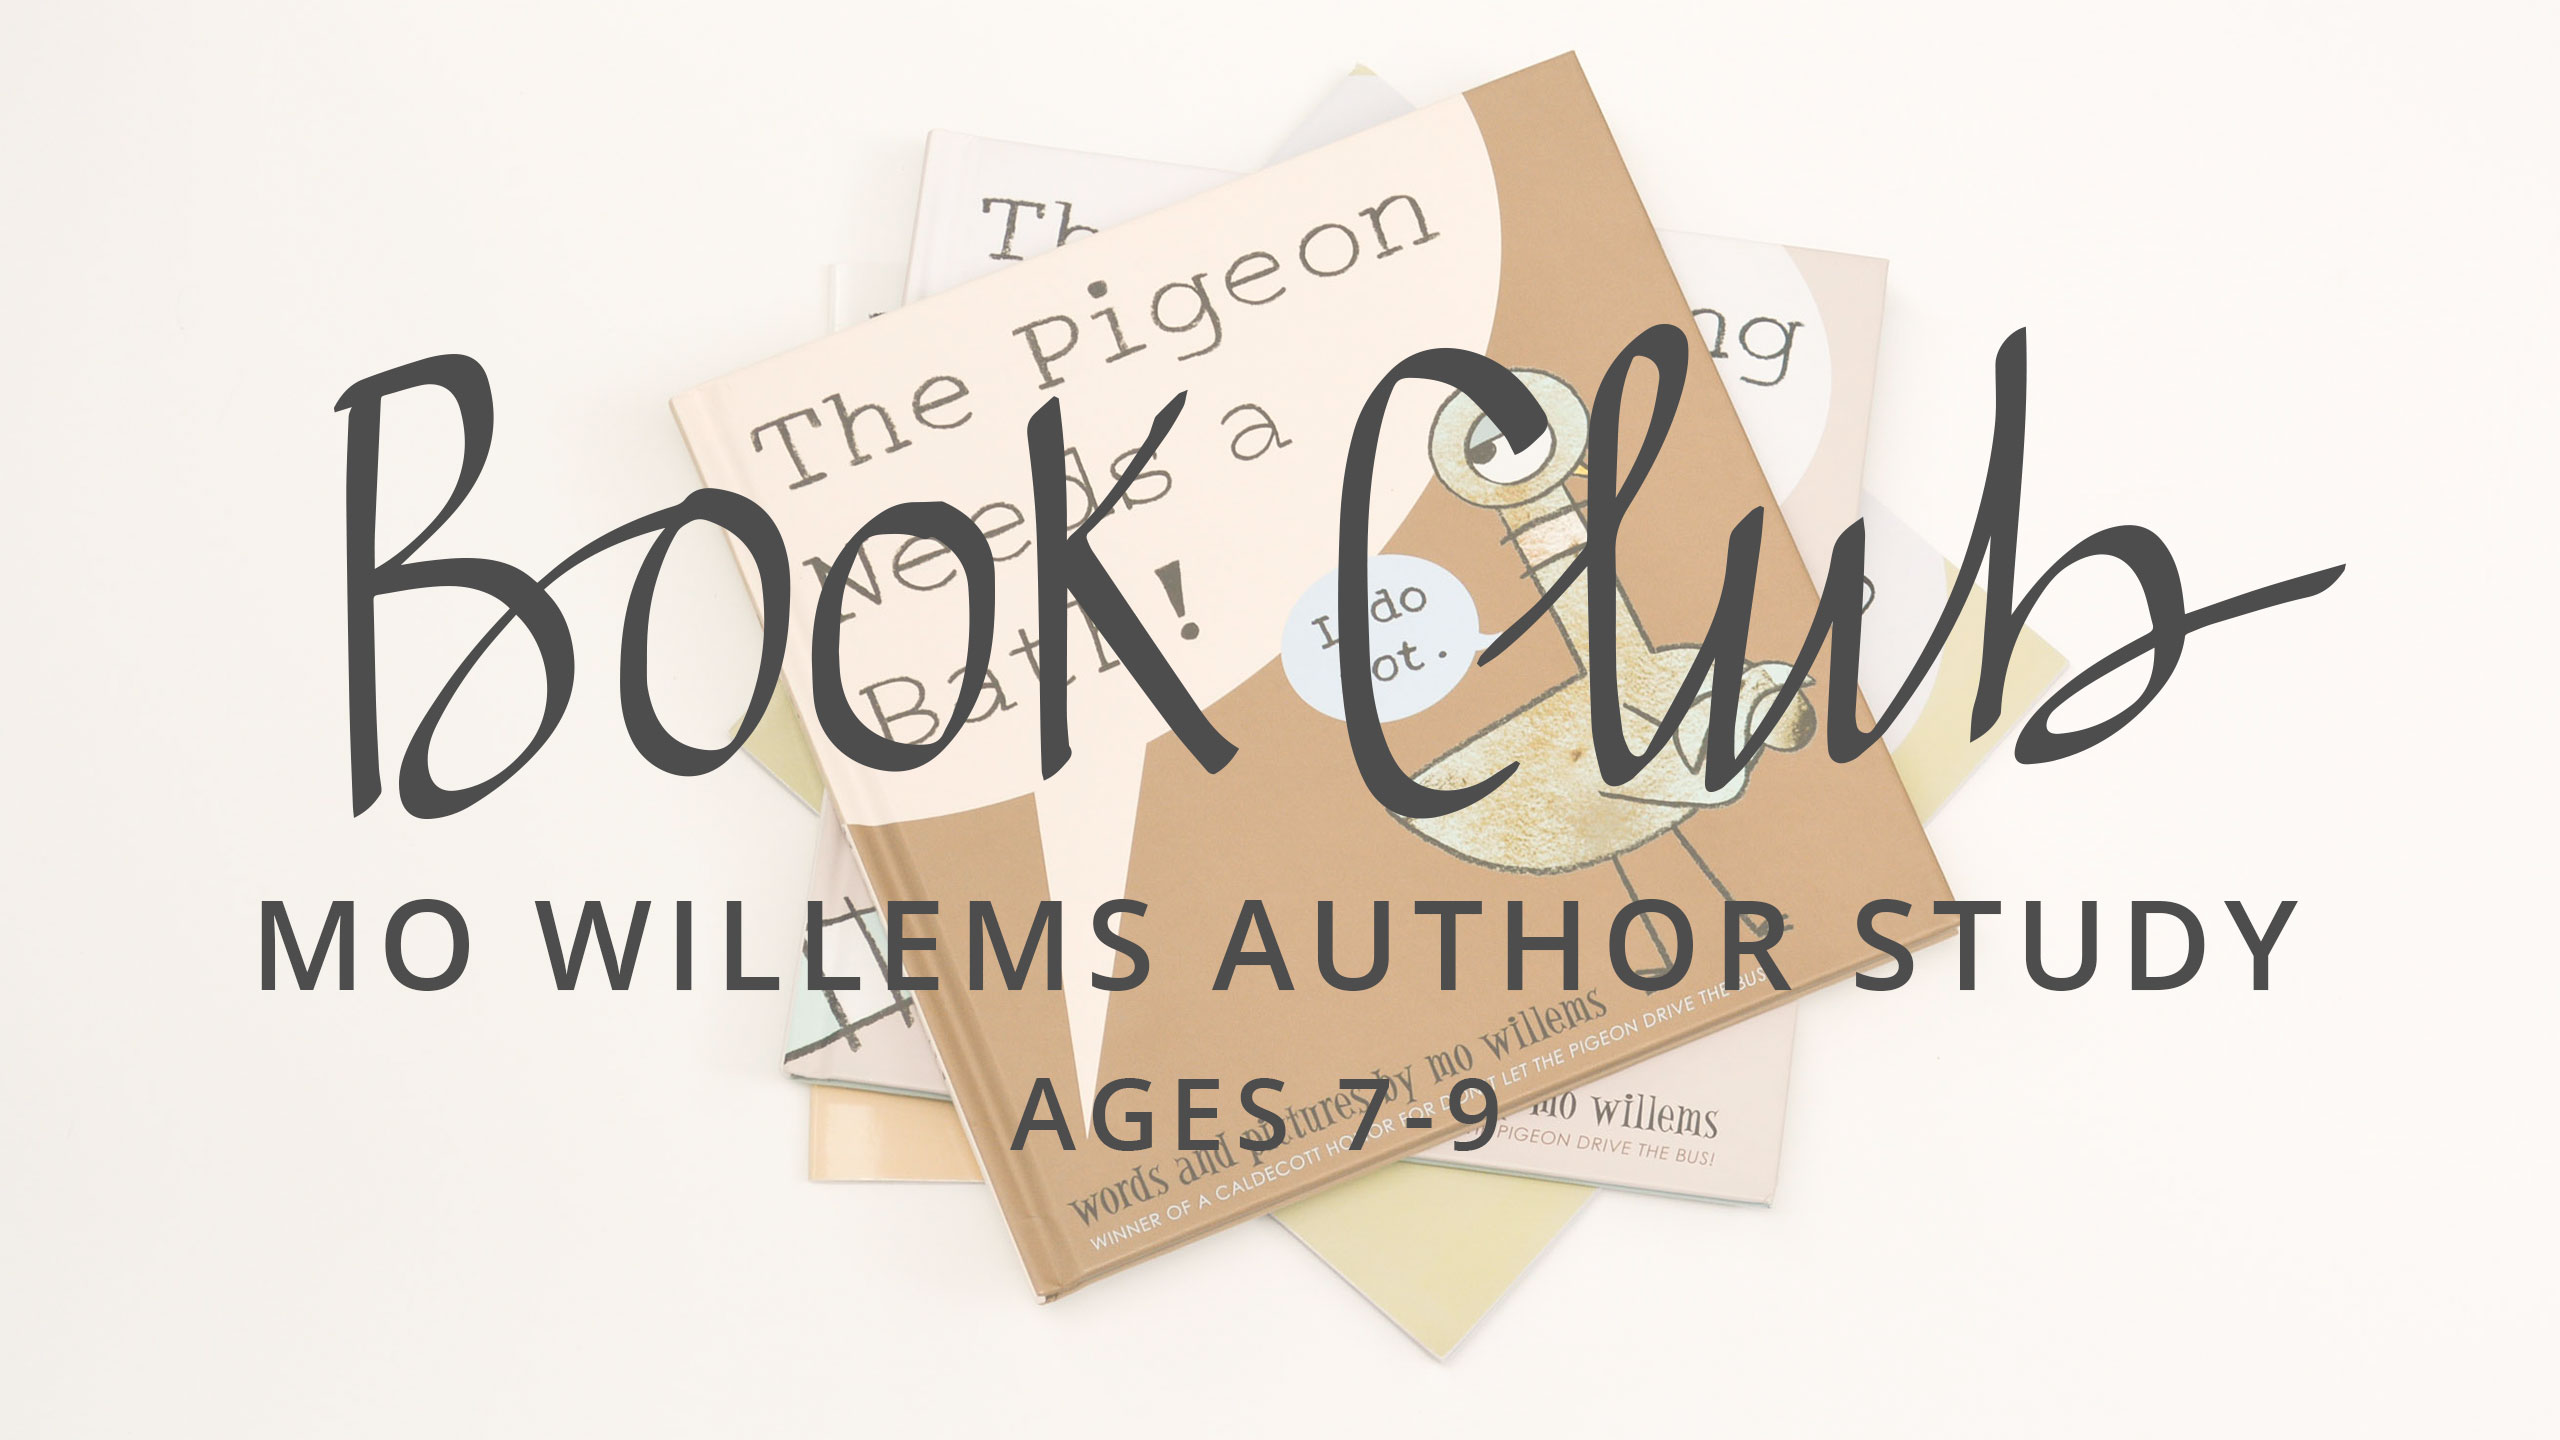 BOOK CLUB: MO WILLEMS AUTHOR STUDY